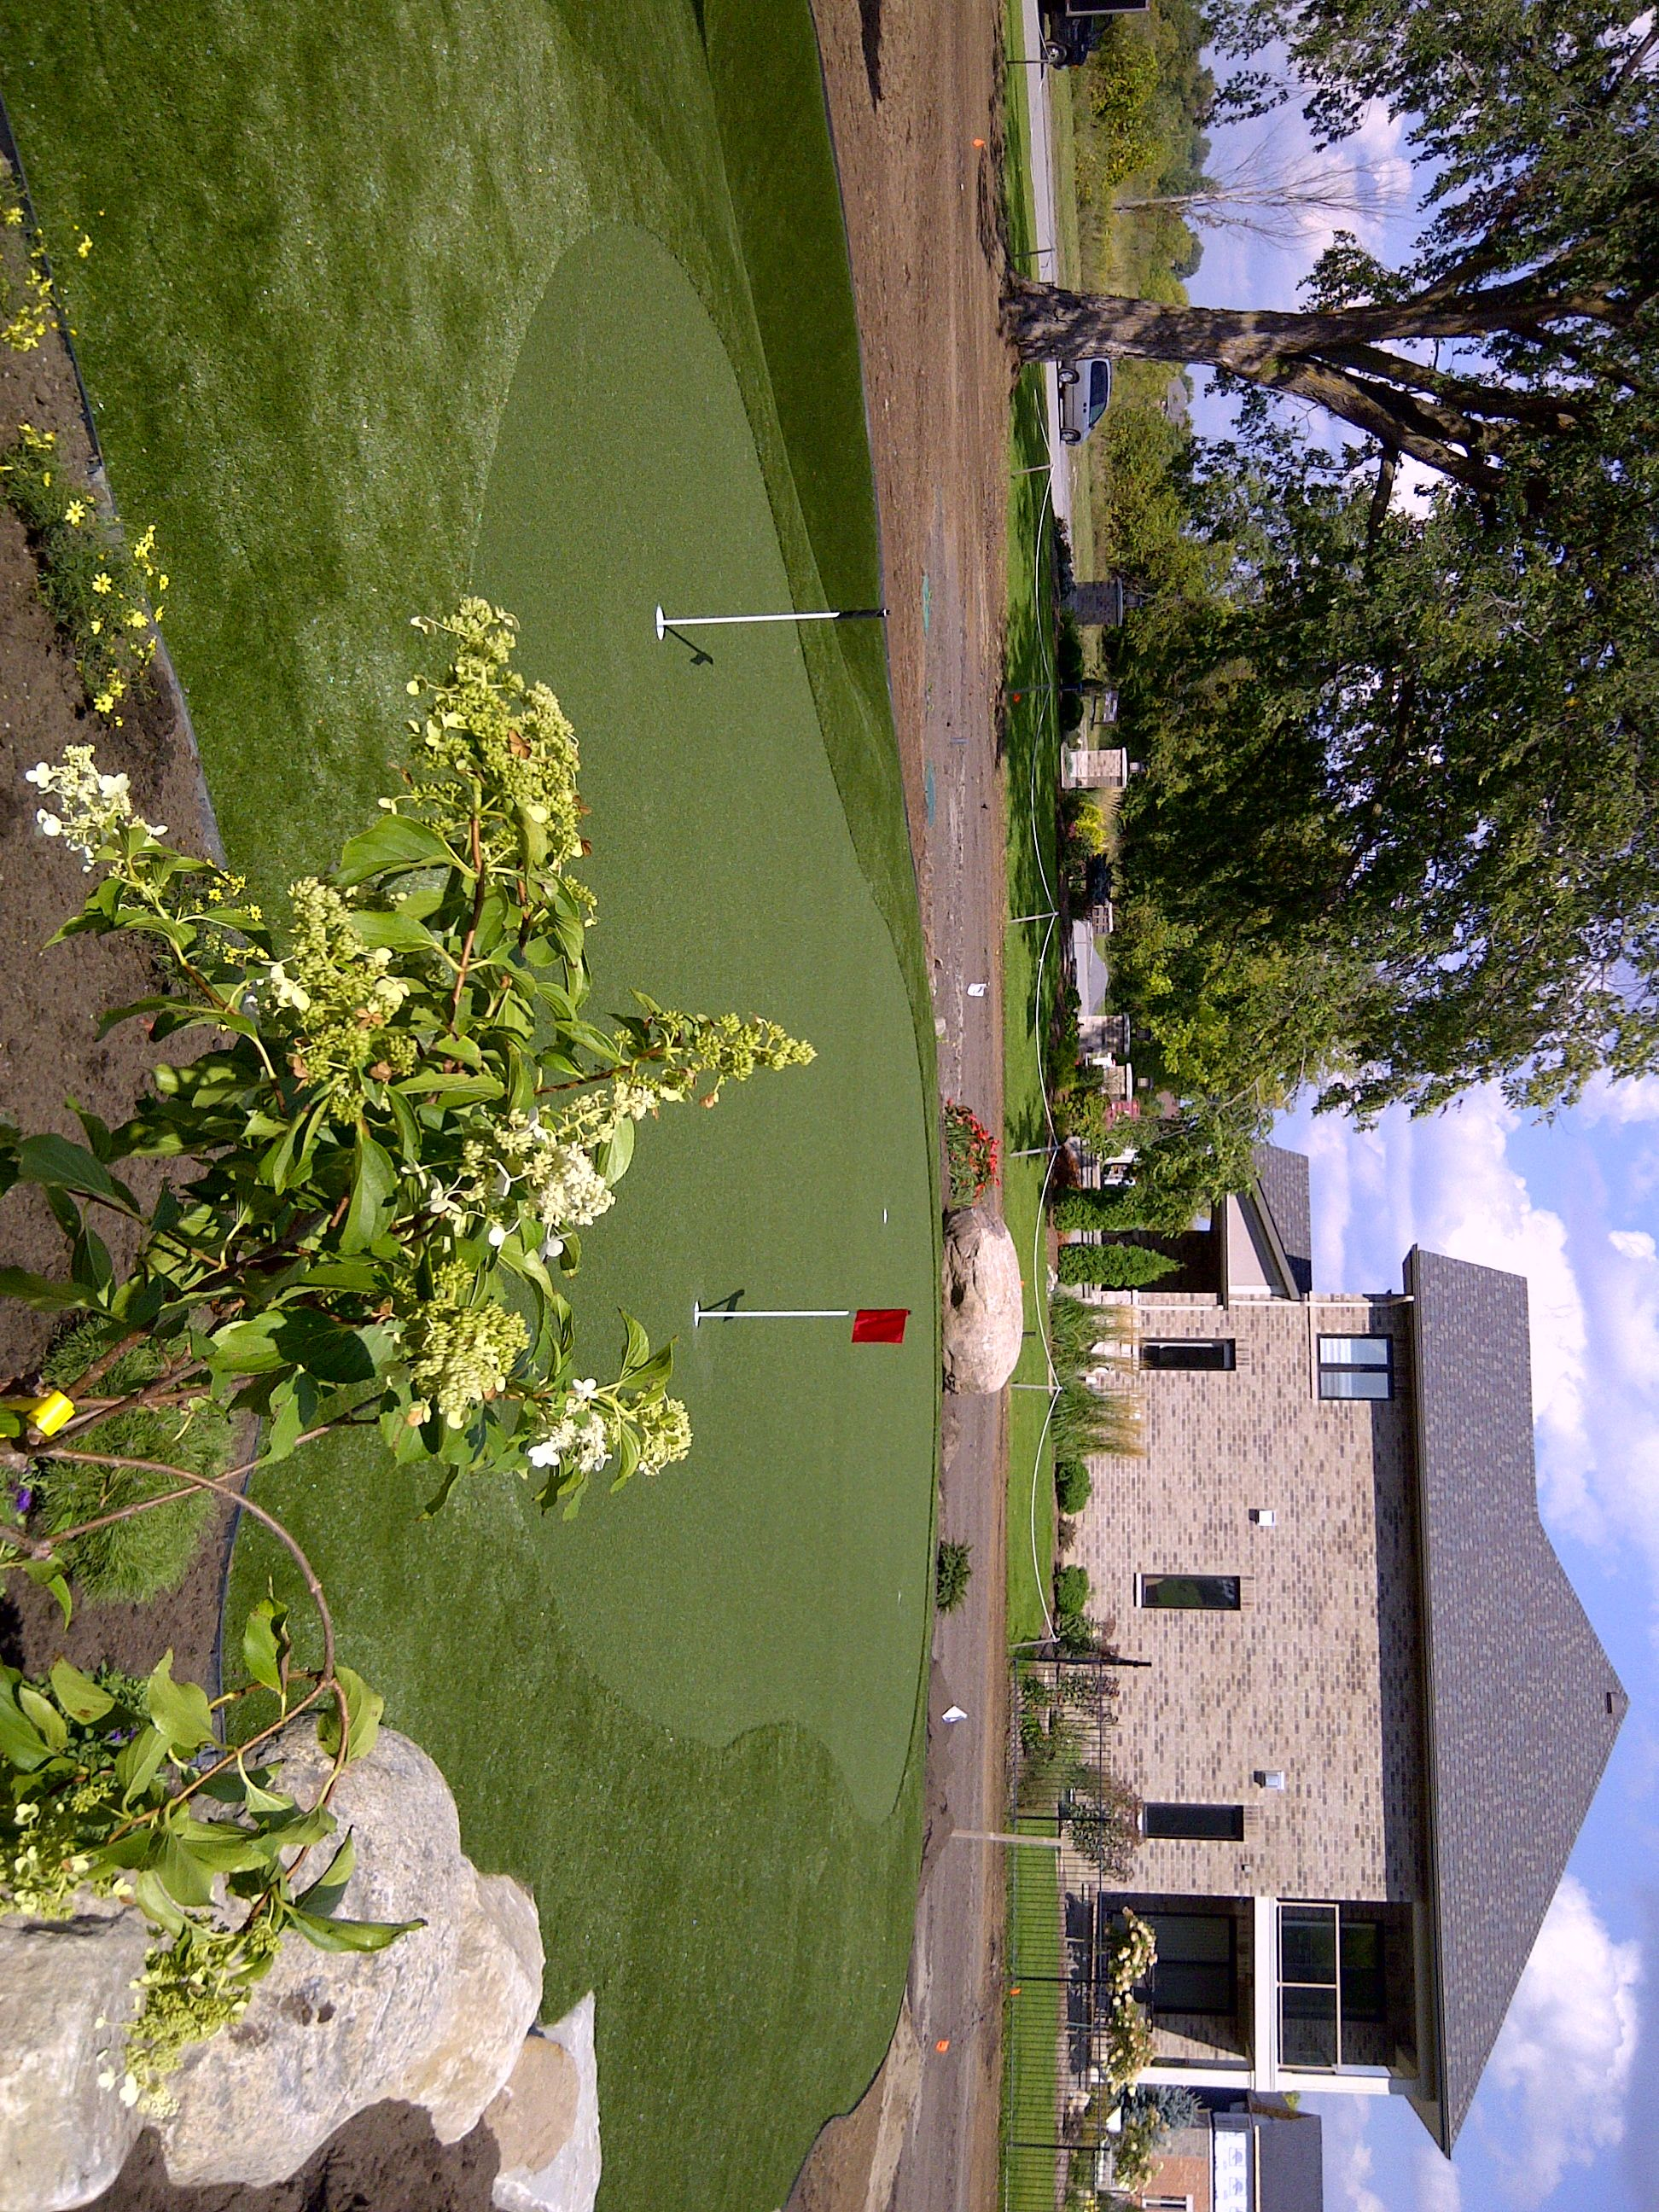 2012 cheo dream home putting green donation from synlawn ottawa